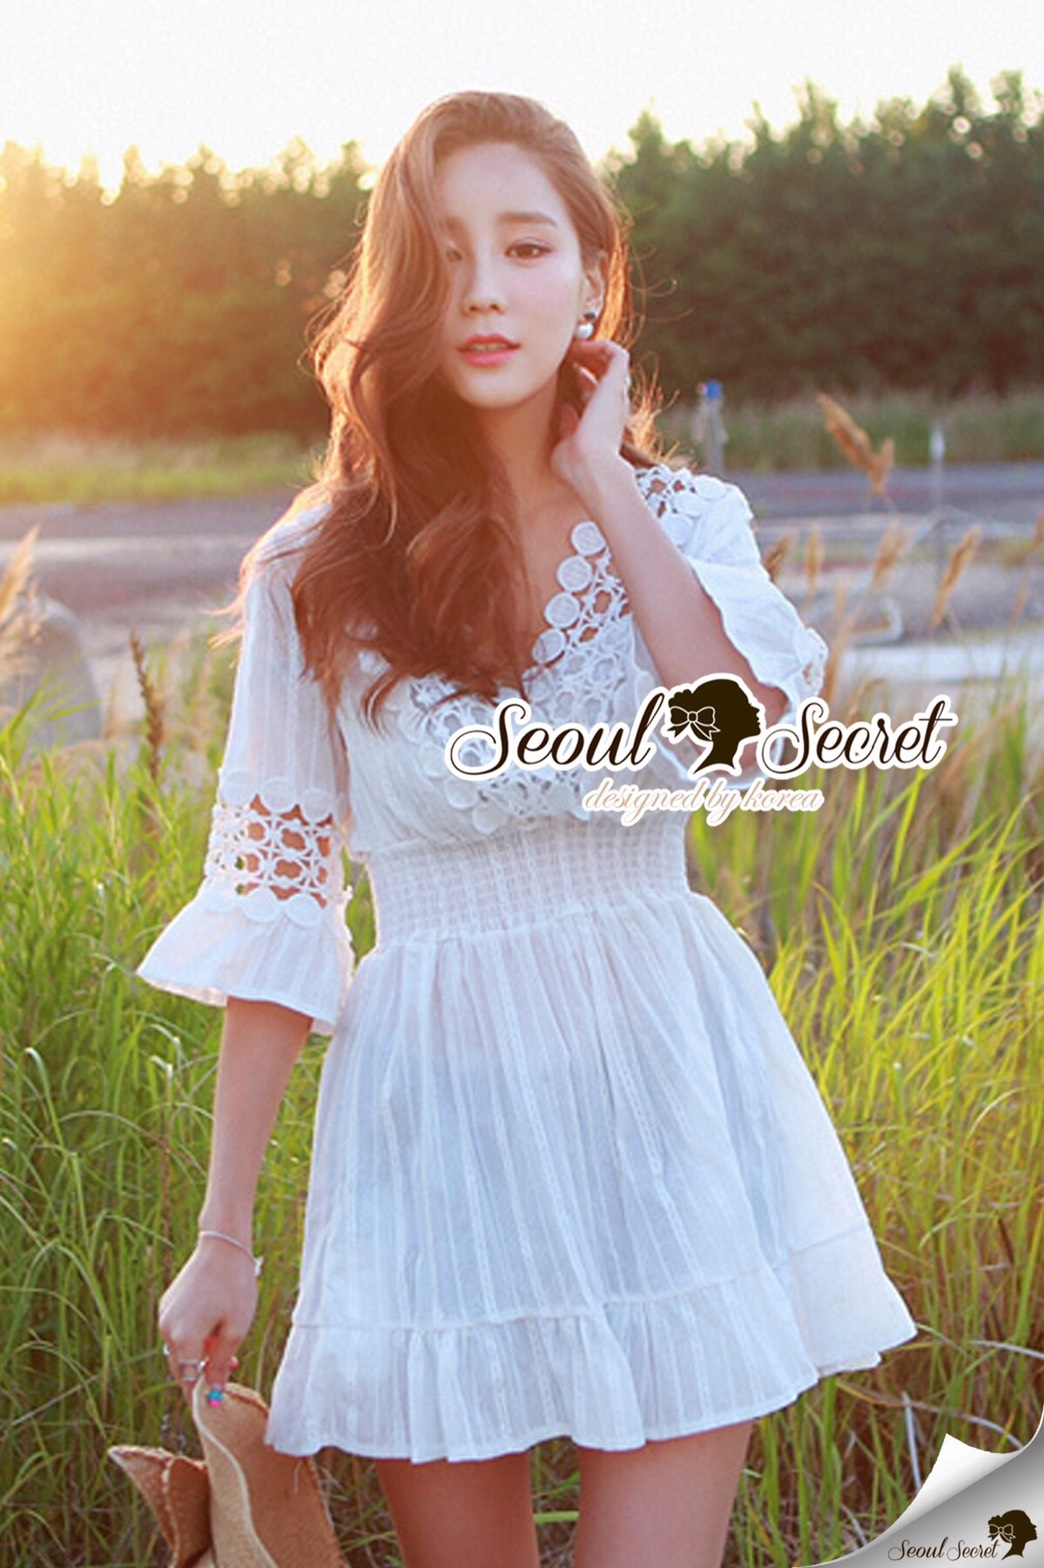 Seoul Secret Say's... V Lace Embroider Ivory Dress